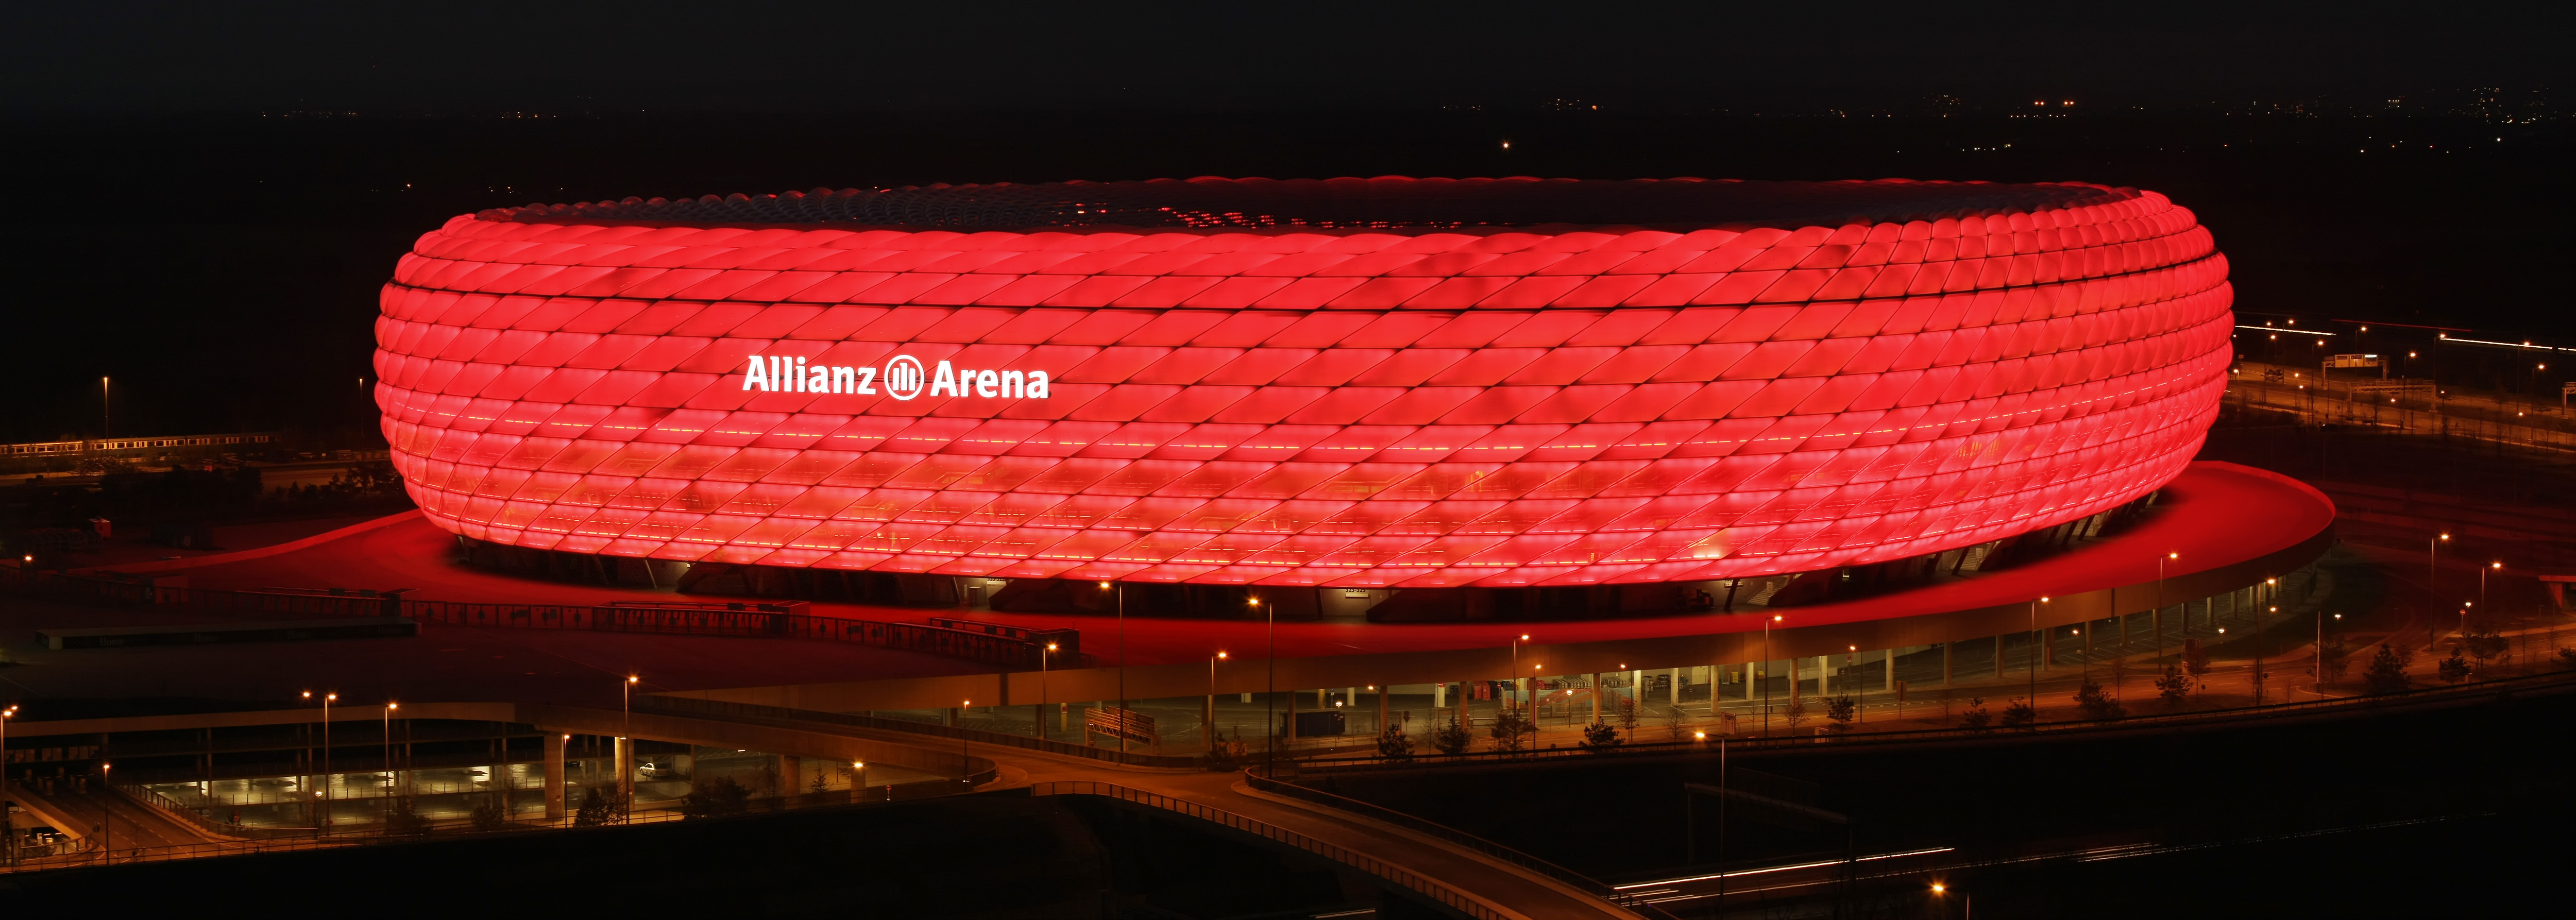 datei allianz arena at night richard wikipedia. Black Bedroom Furniture Sets. Home Design Ideas